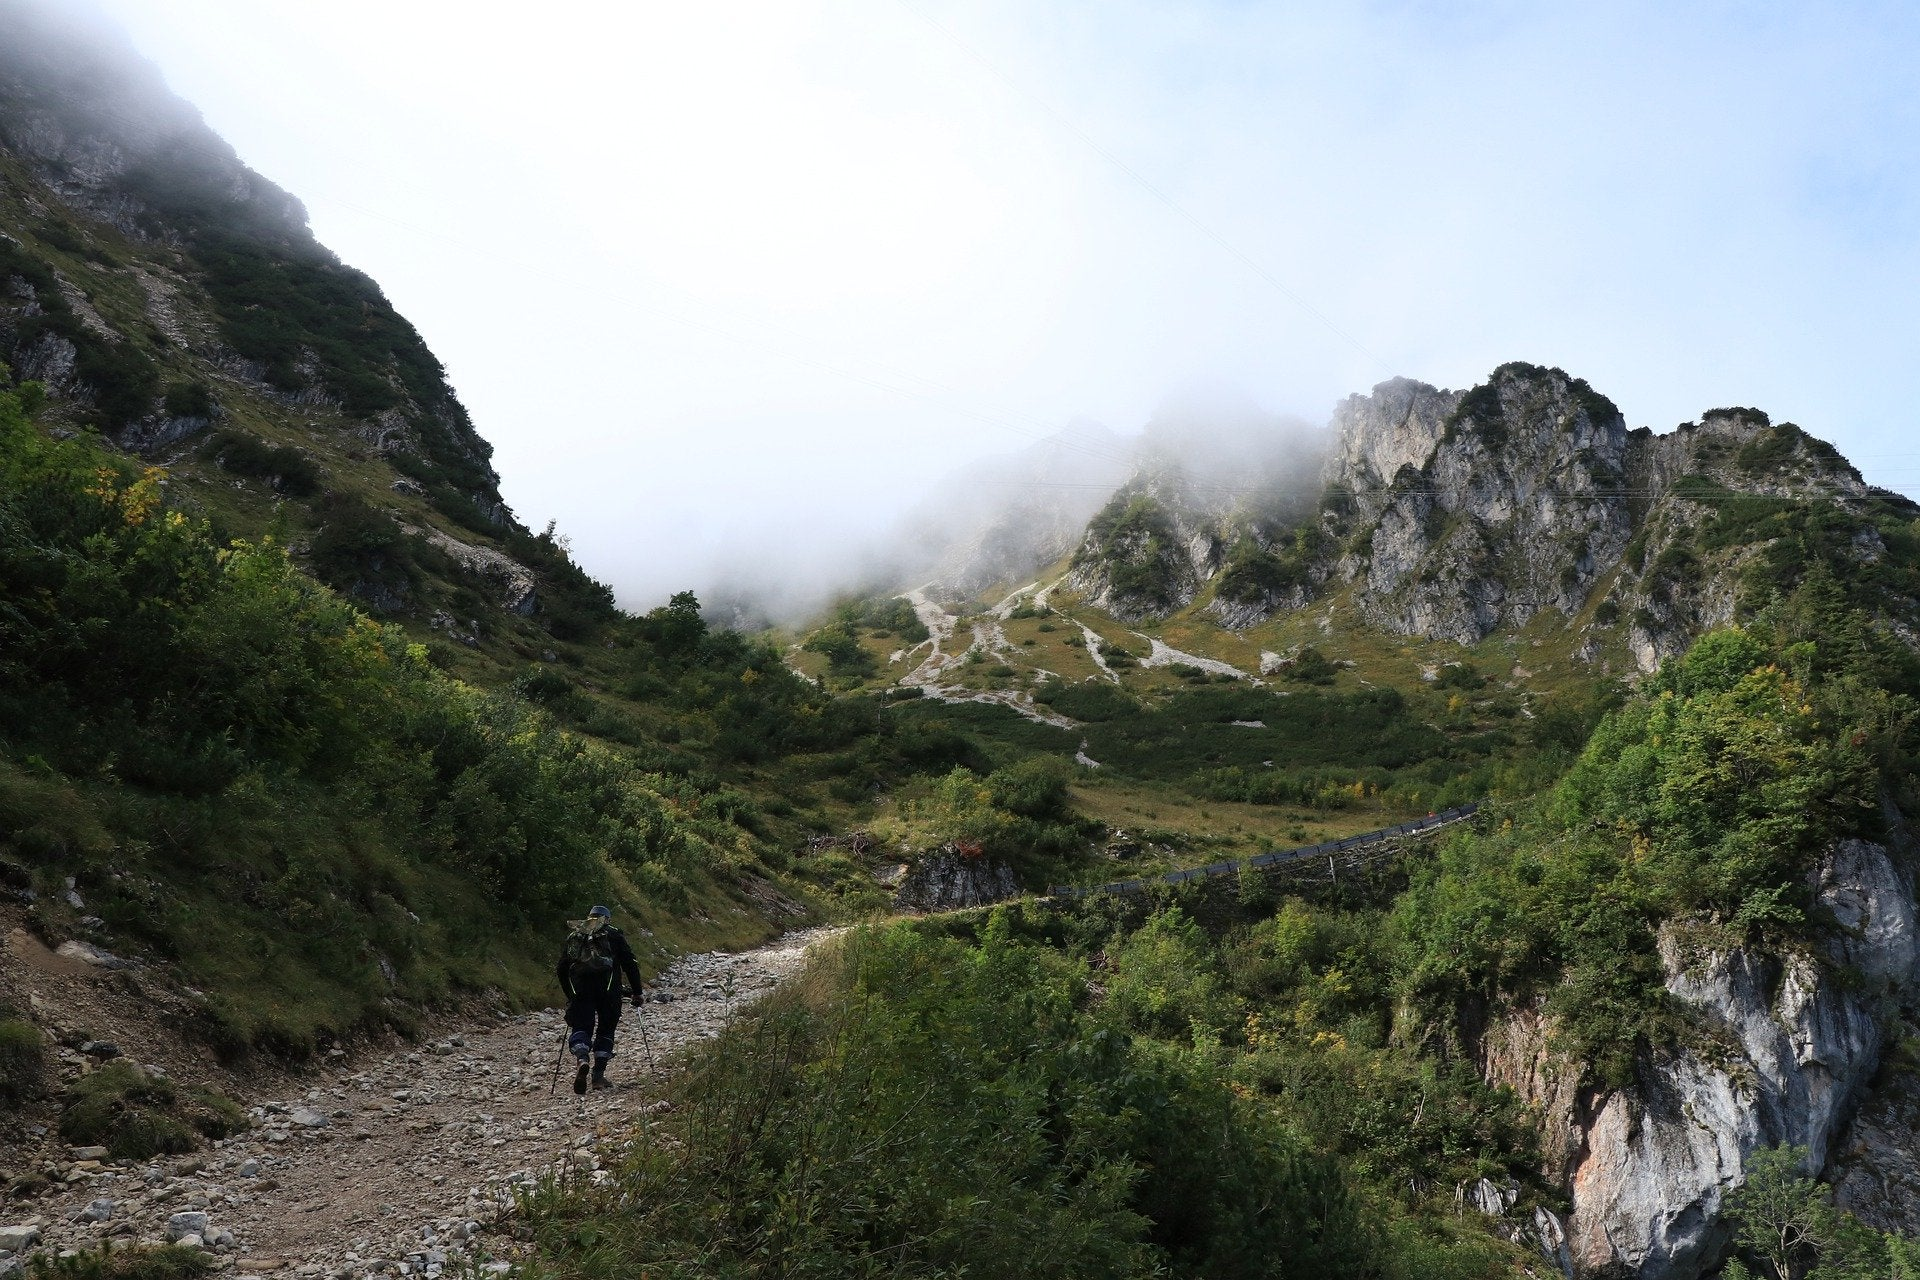 What to Take with You on a Hike: List of Essential Things - SWAGGER Magazine